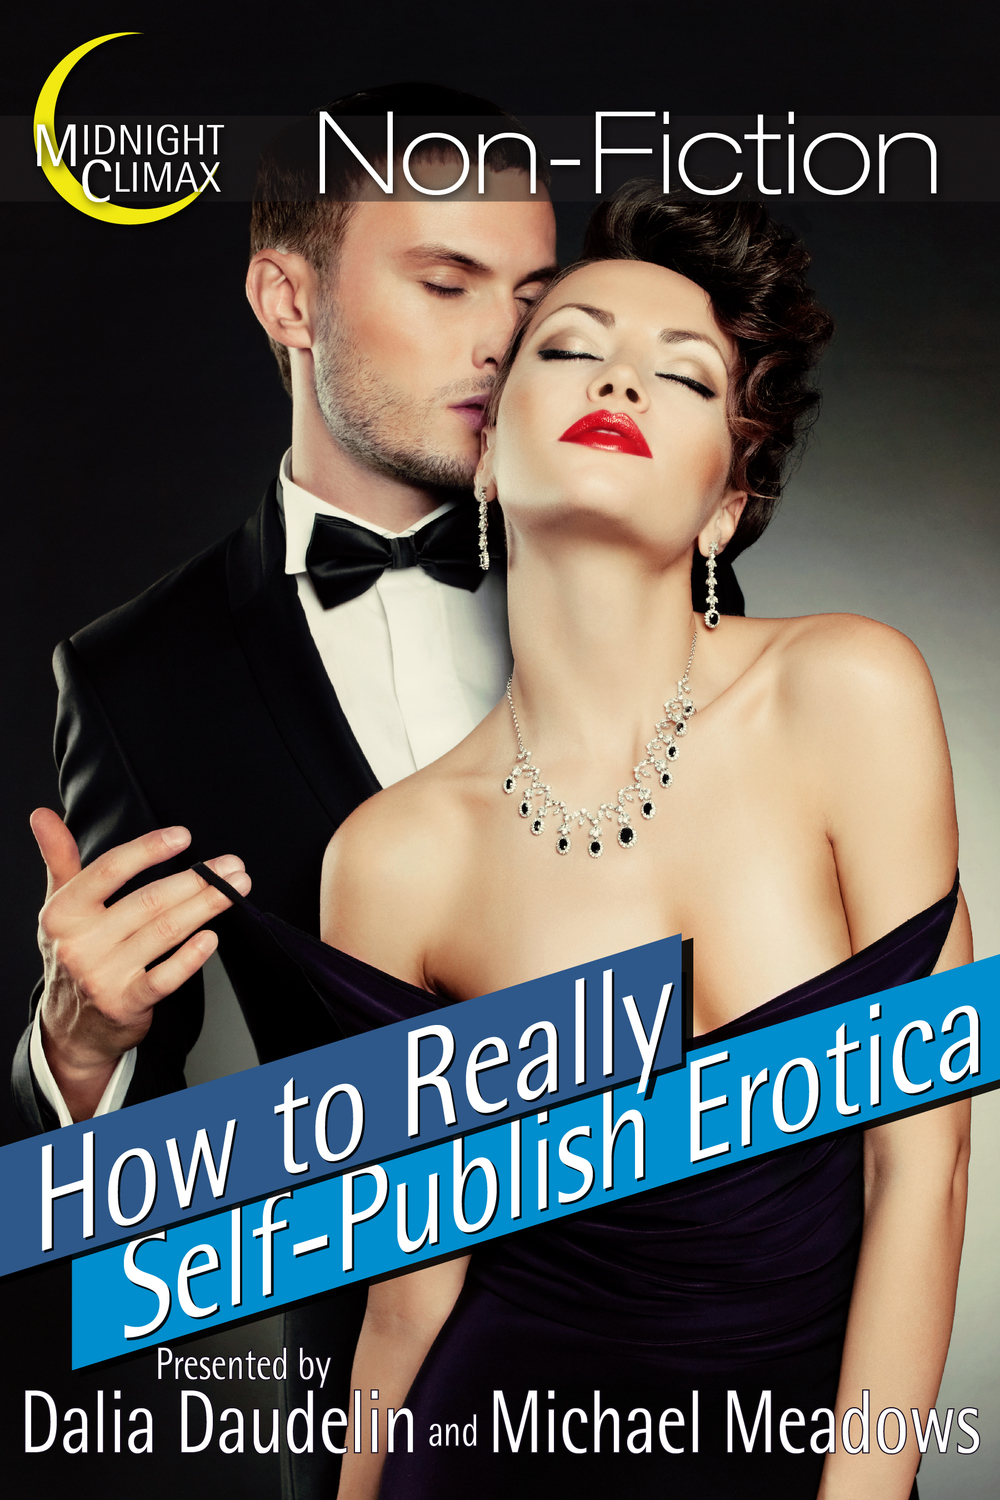 Self publish your own erotic stories! This book reveals secrets that other erotica authors don't want you to know.